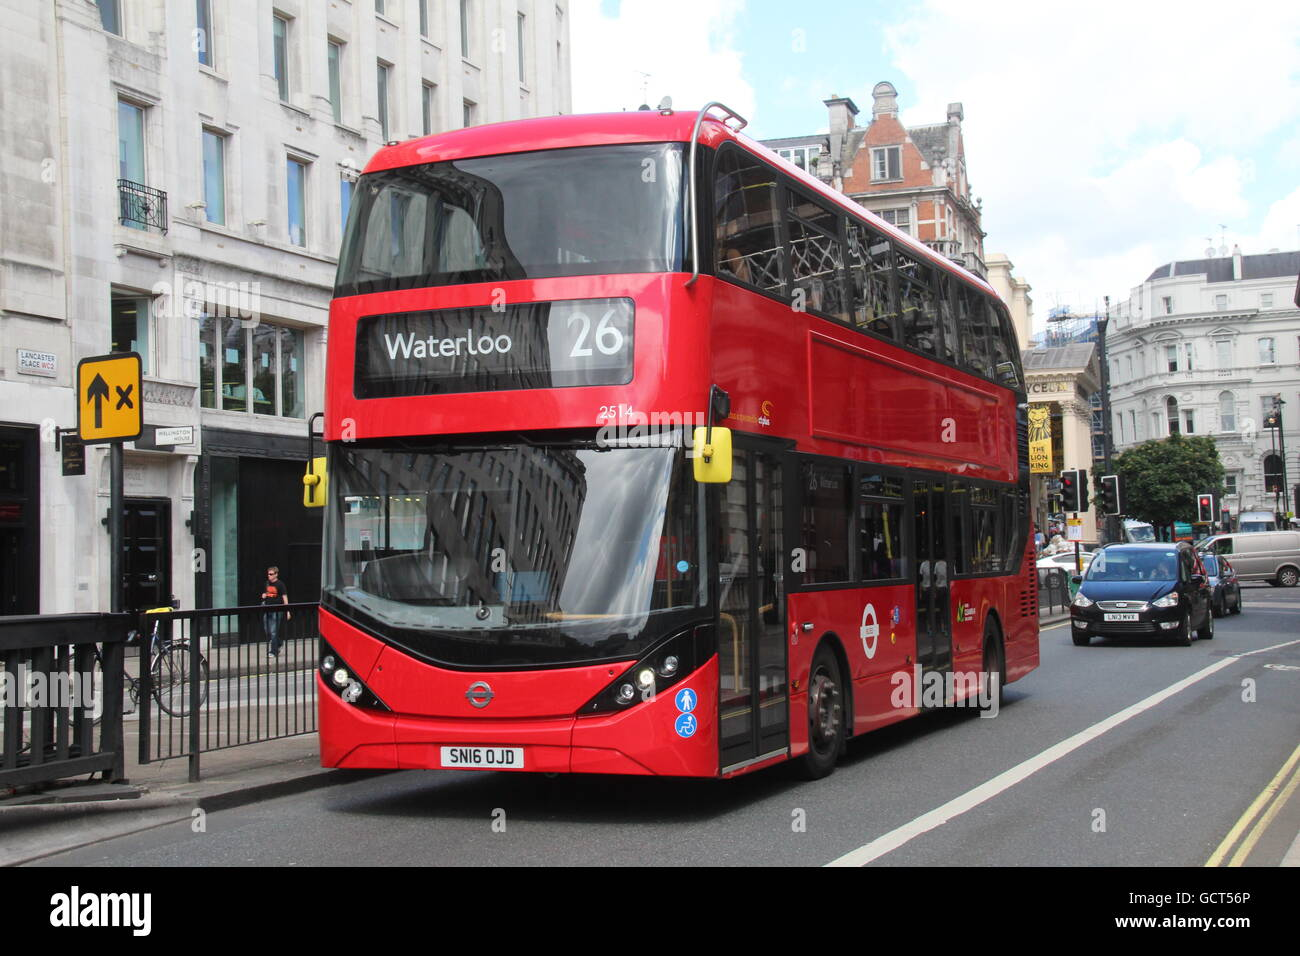 A NEARSIDE VIEW OF A CT PLUS LONDON ALEXANDER DENNIS ENVIRO 400H CITY BUS ON ROUTE 26 AT WATERLOO - Stock Image